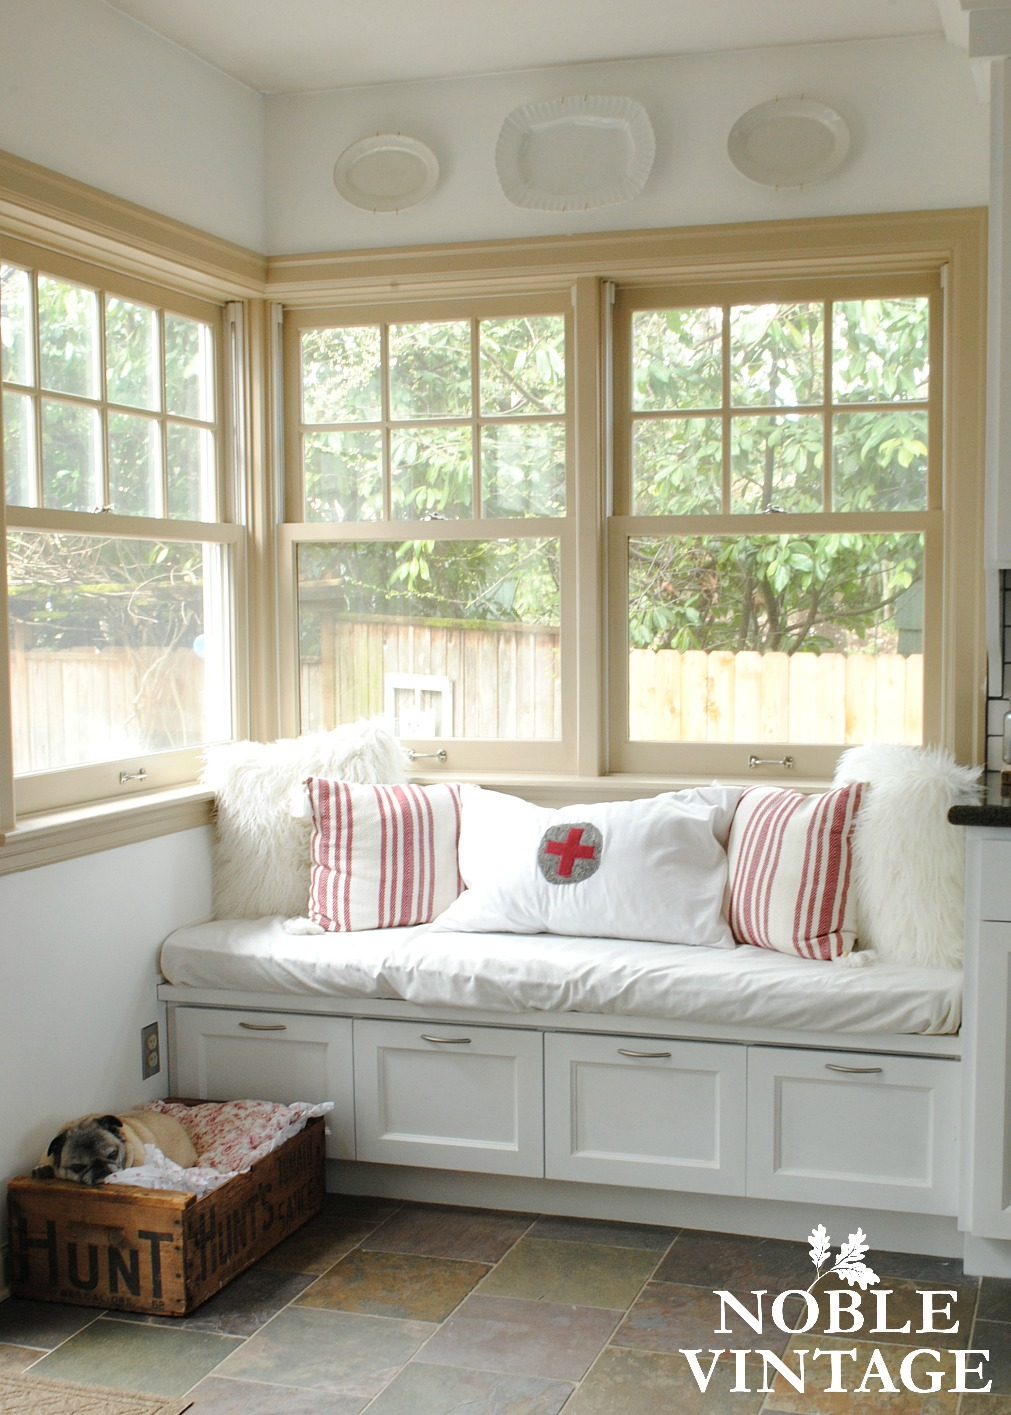 The Back Patio Door Lets In Lots Of Natural Light, But The Panes Are All  Failing  They All Have A White Film On Them. I Have A Dutch Door Waiting In  The ...